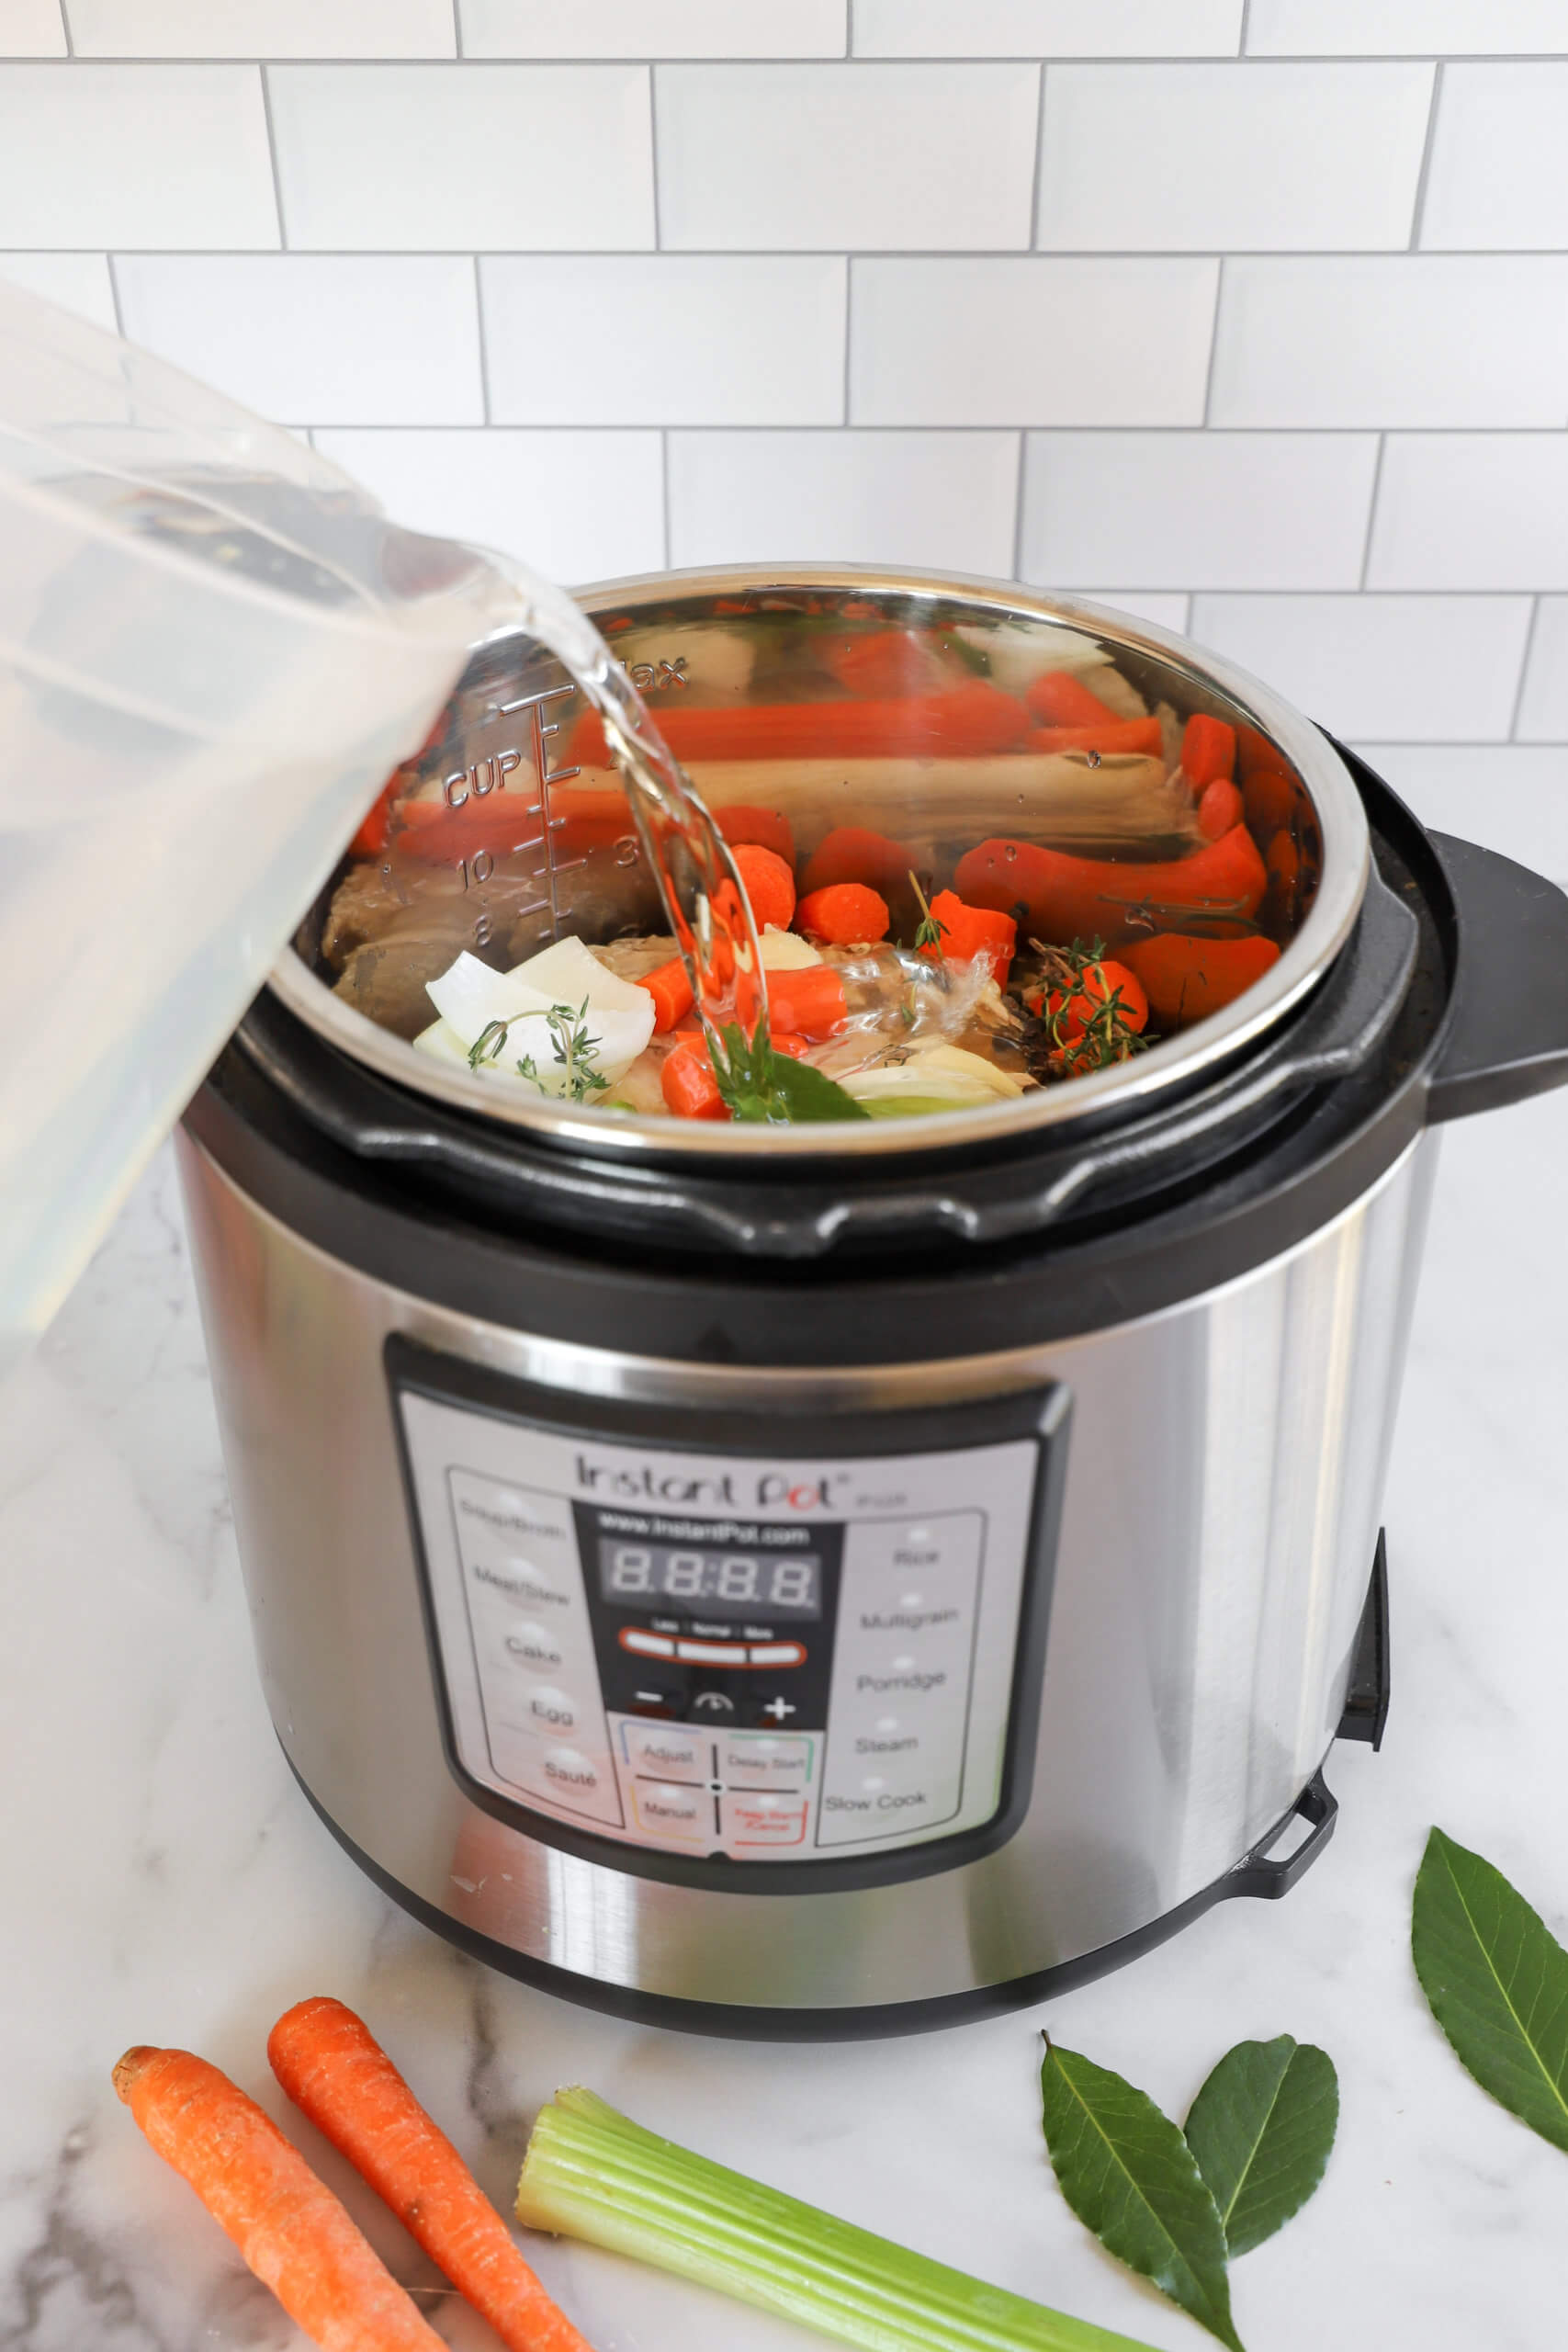 How to make chicken stock in an Instant Pot